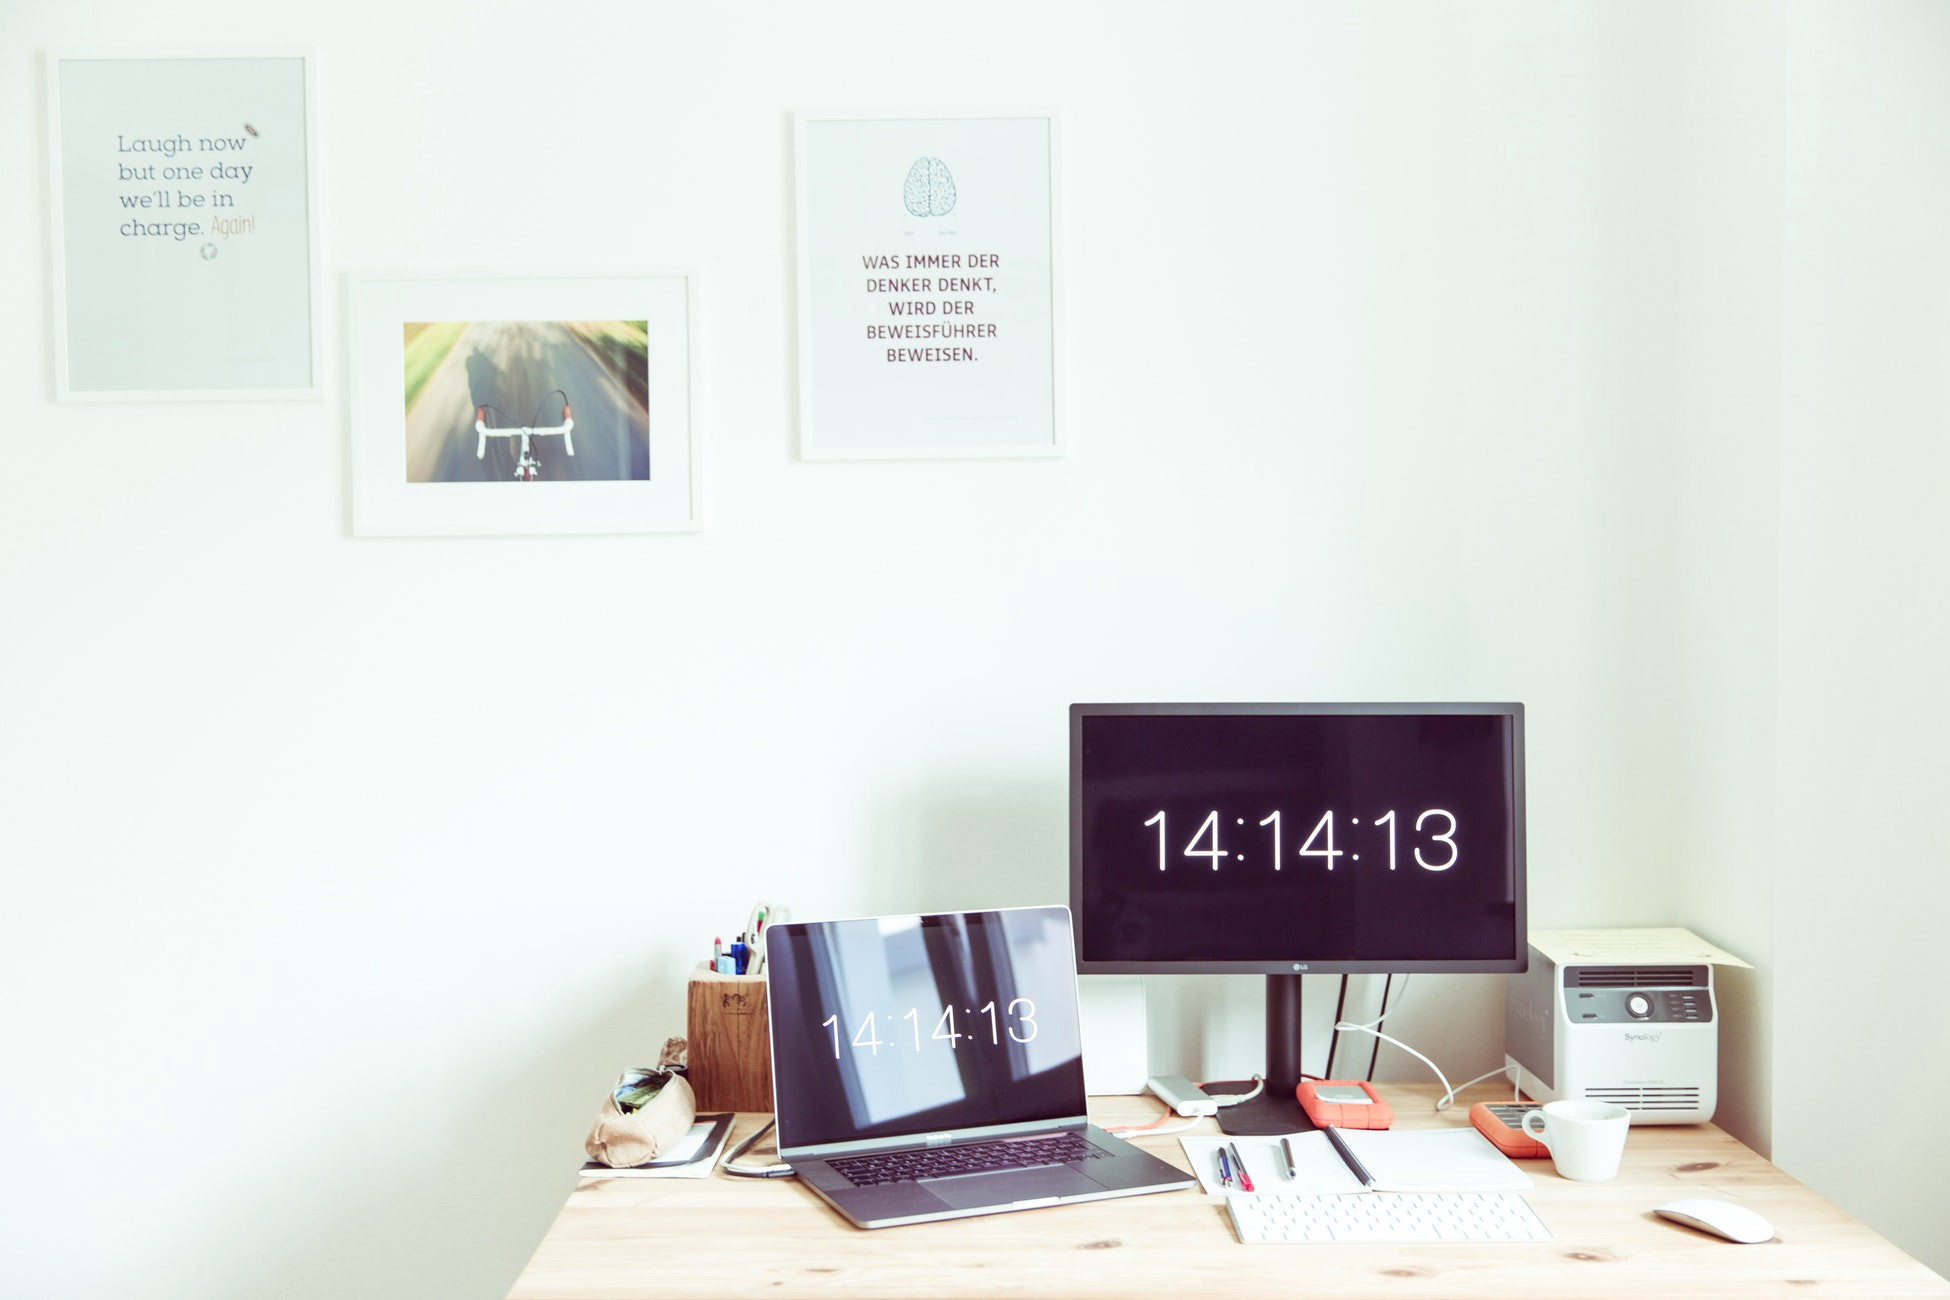 How to Stop Thinking About Work at Home